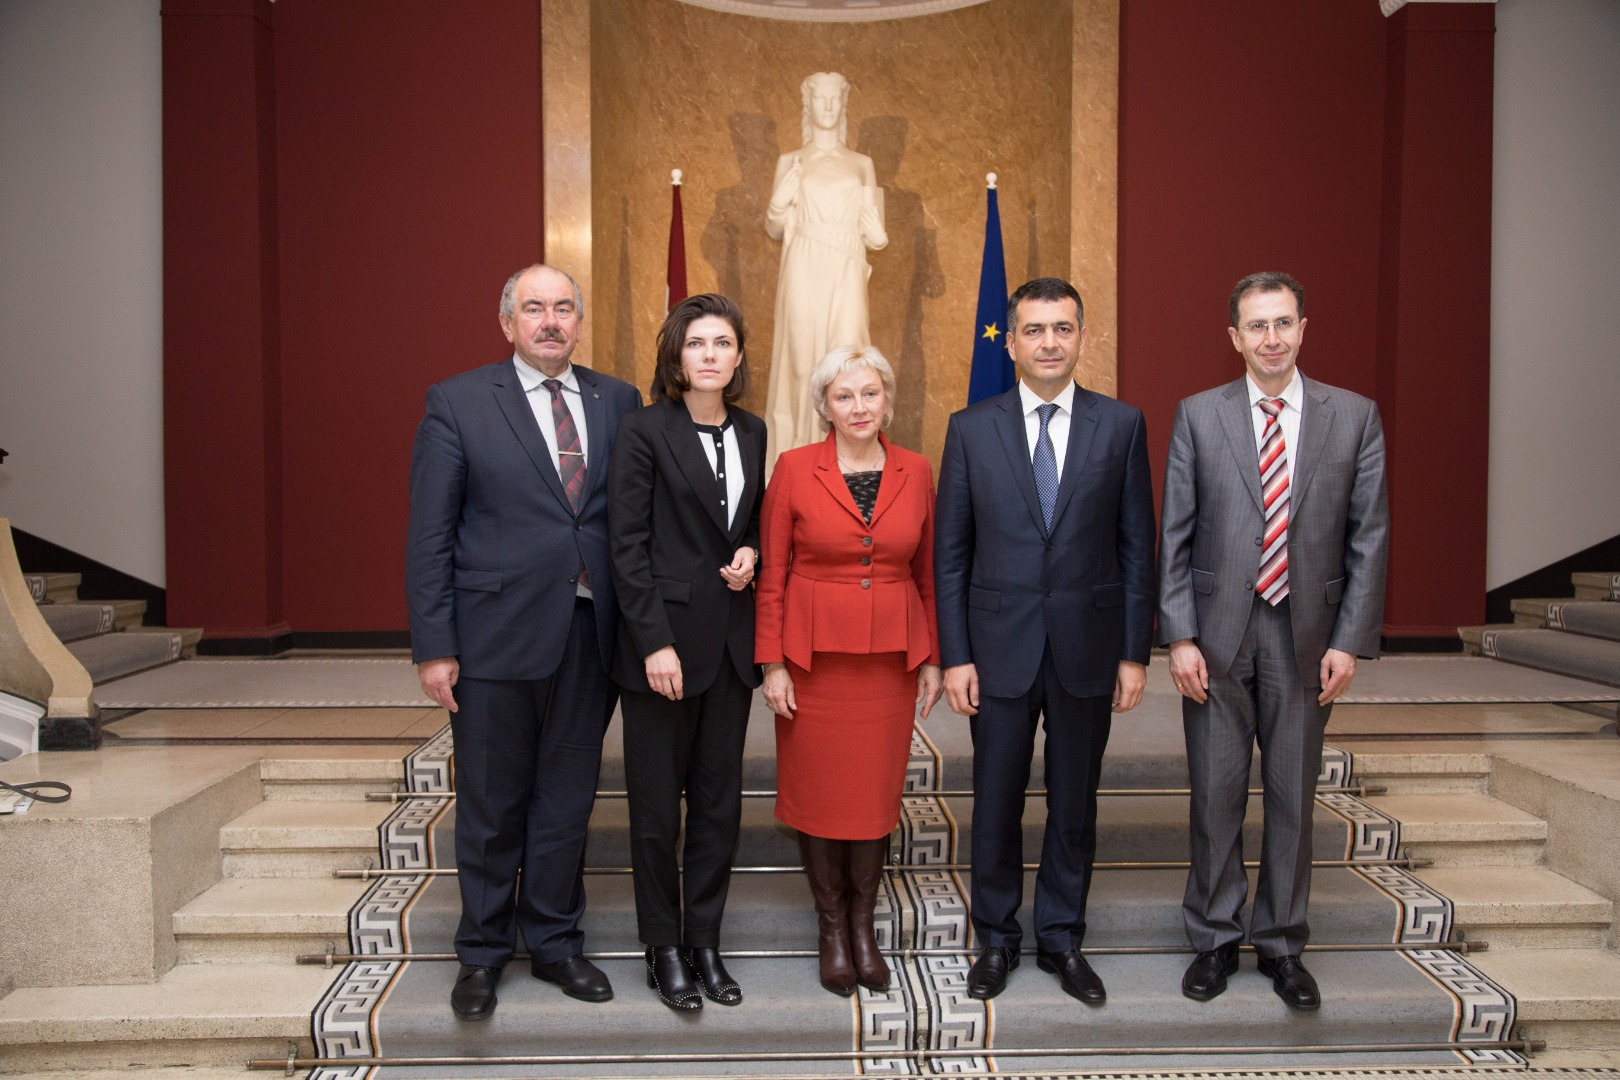 """31.10.2019. After the meeting in the Supreme Court (from left), Ivars Bickovics, Chief Justice of the Supreme Court and the chair of the Council for the Judiciary, Anna Skrjabina, head of the project """"Justice for Development"""", Aija Branta, Senator of the Supreme Court, Ramin Gurbanov, President of the European Commission for the Efficiency of Justice of the Council of Europe (CEPEJ), and Artashes Melikyan, Head of the Secretariat of the Consultative Council of European Judges."""